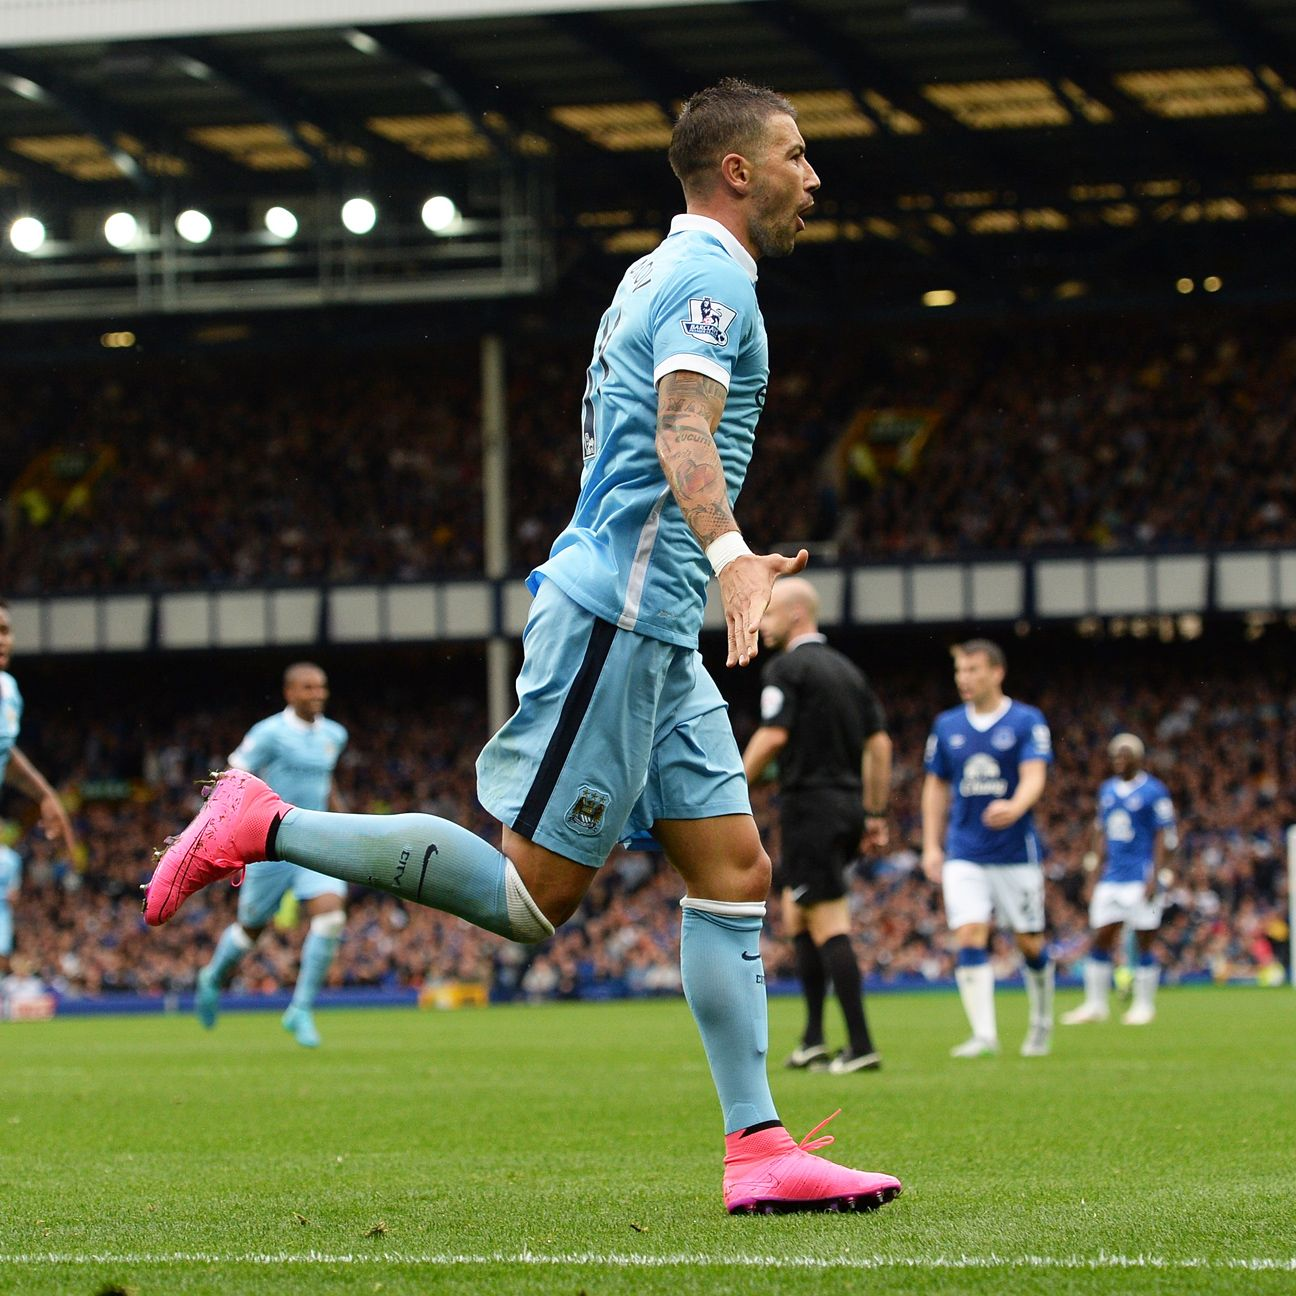 Aleksandar Kolarov has contributed in both defence and attack during Manchester City's sizzling start.